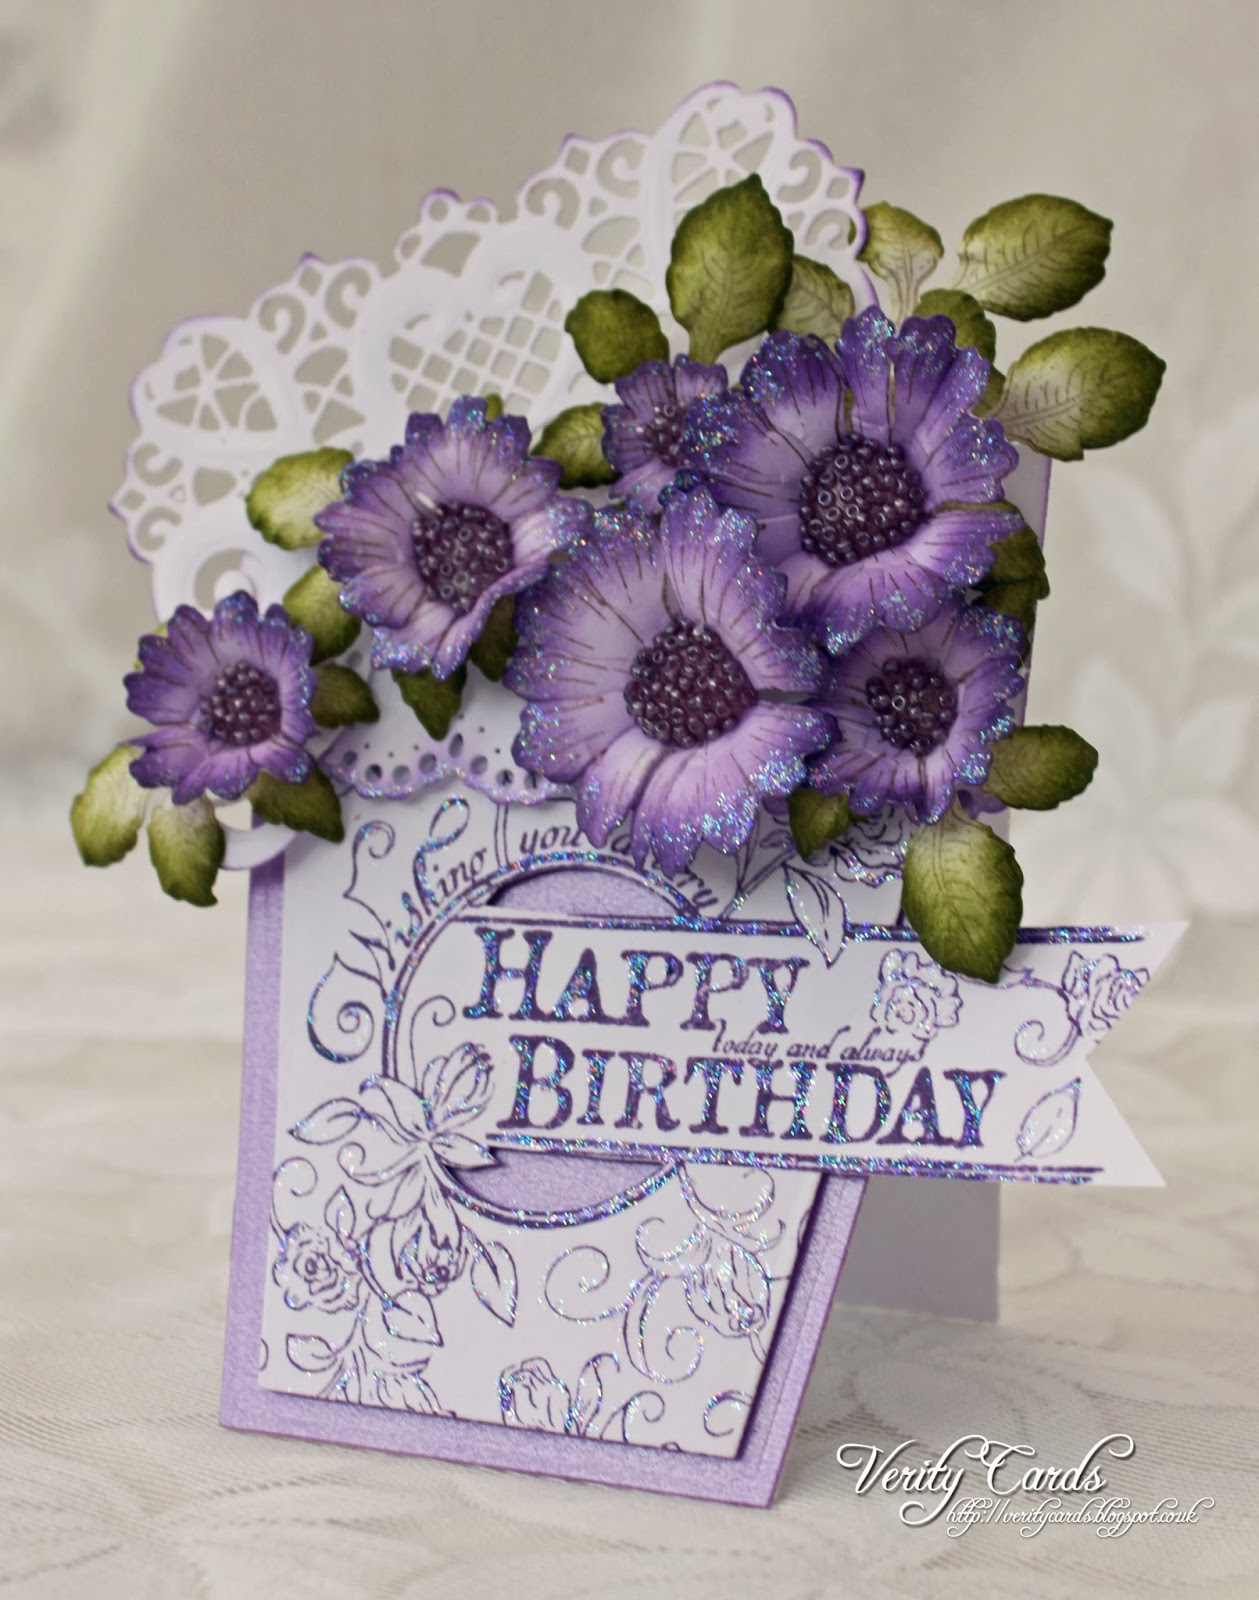 Verity Cards Birthday Flowers